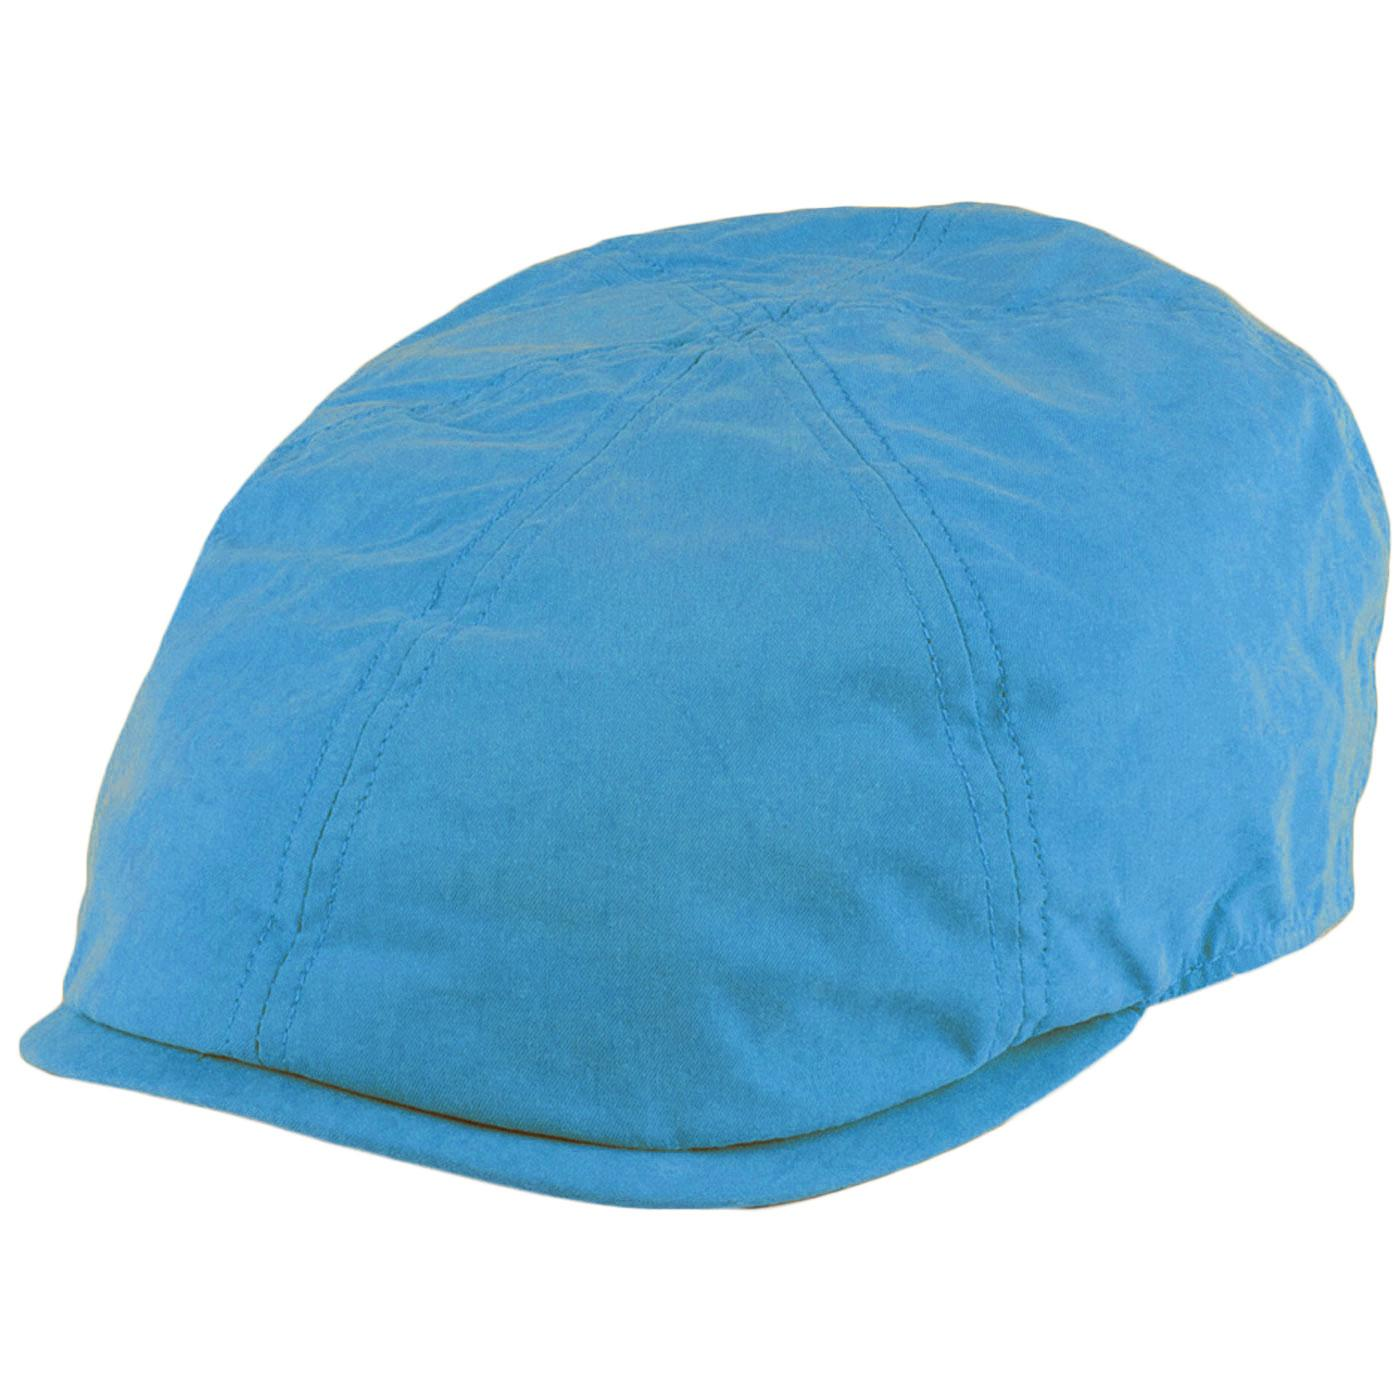 FAILSWORTH Micro 6 Panel Retro Newsboy Cap (Blue)